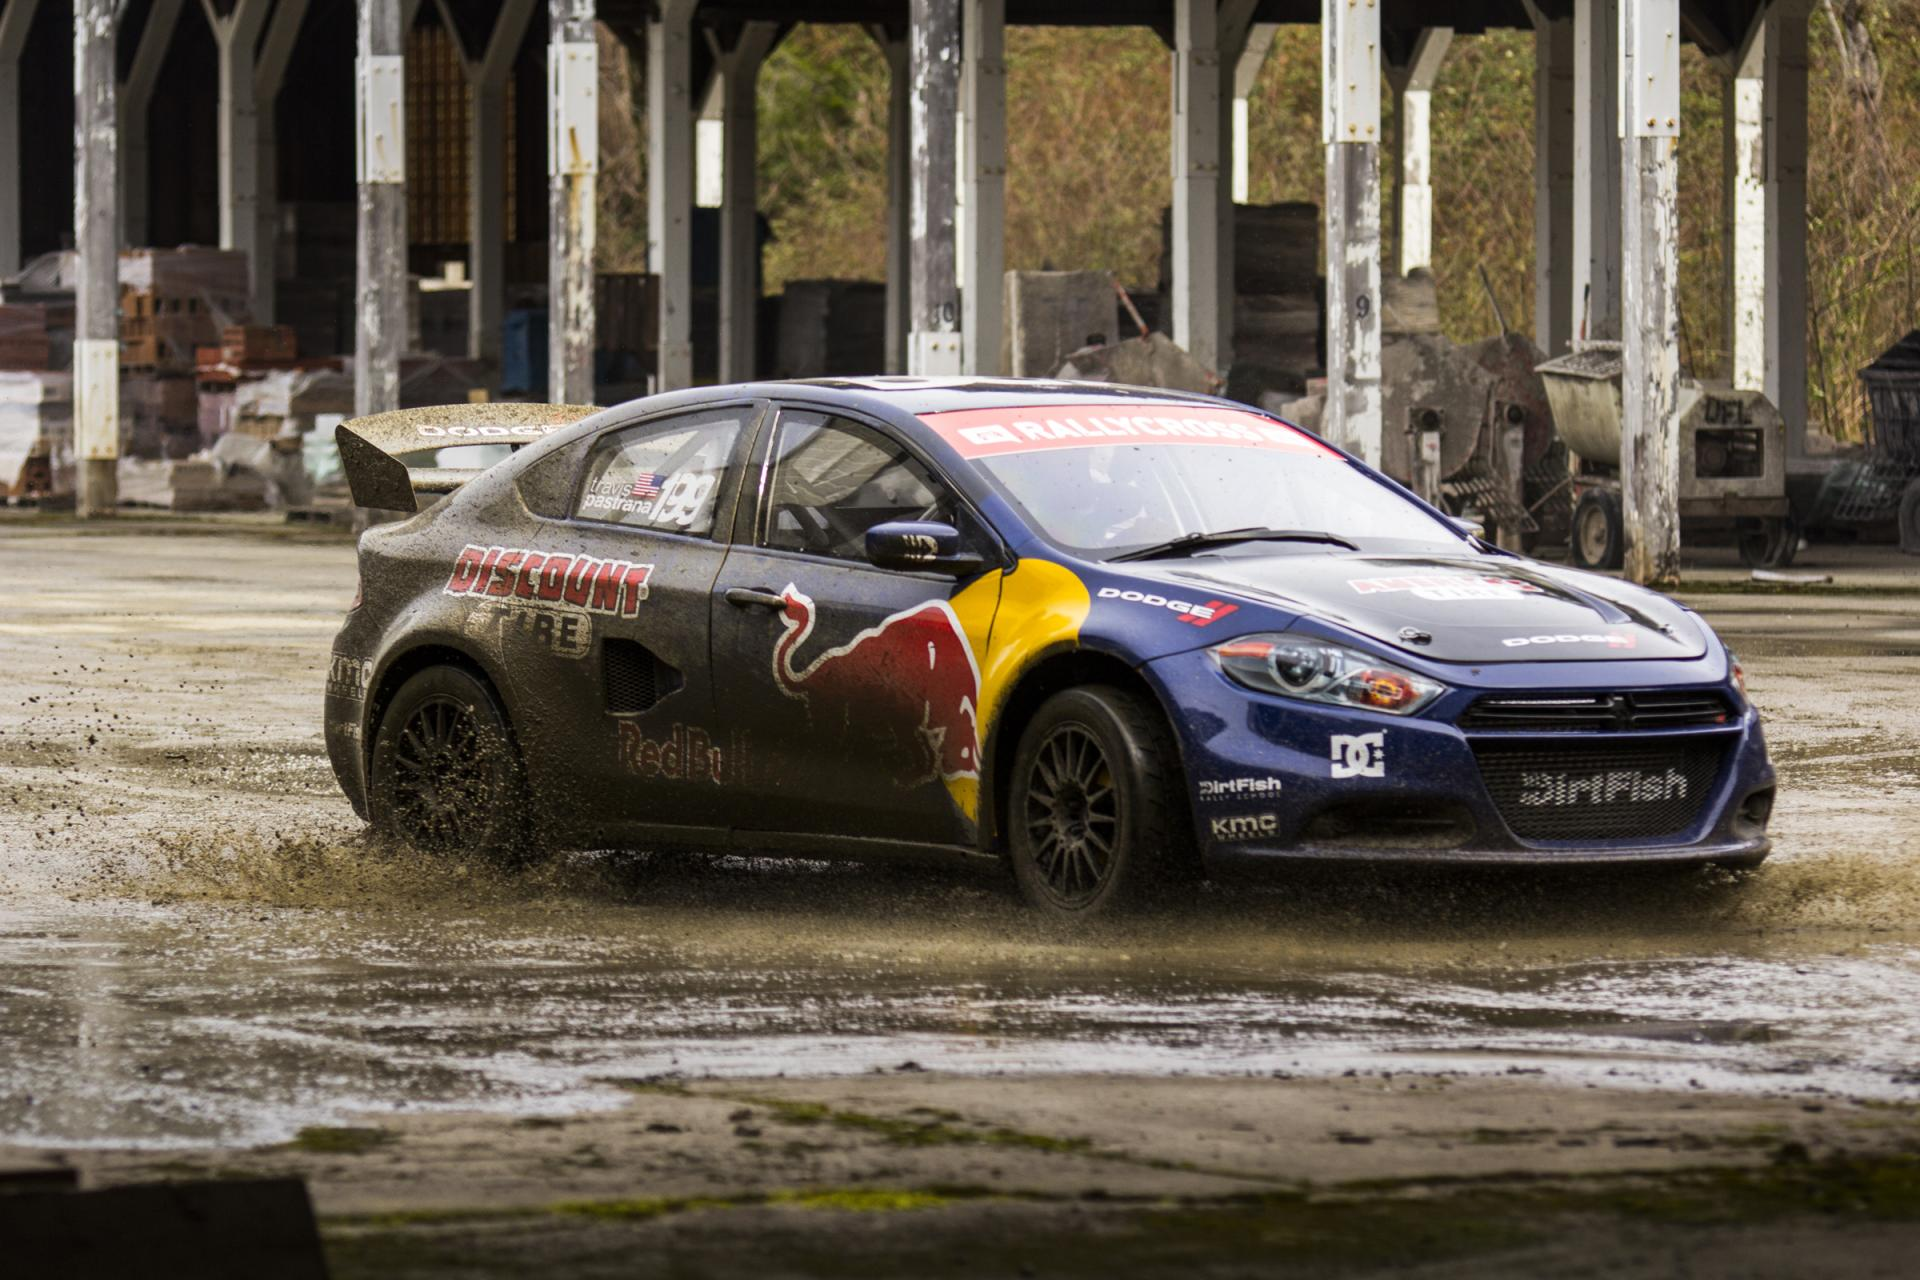 Dodge Dart Srt >> 2013 Dodge Dart Srt Rallycross News And Information Research And